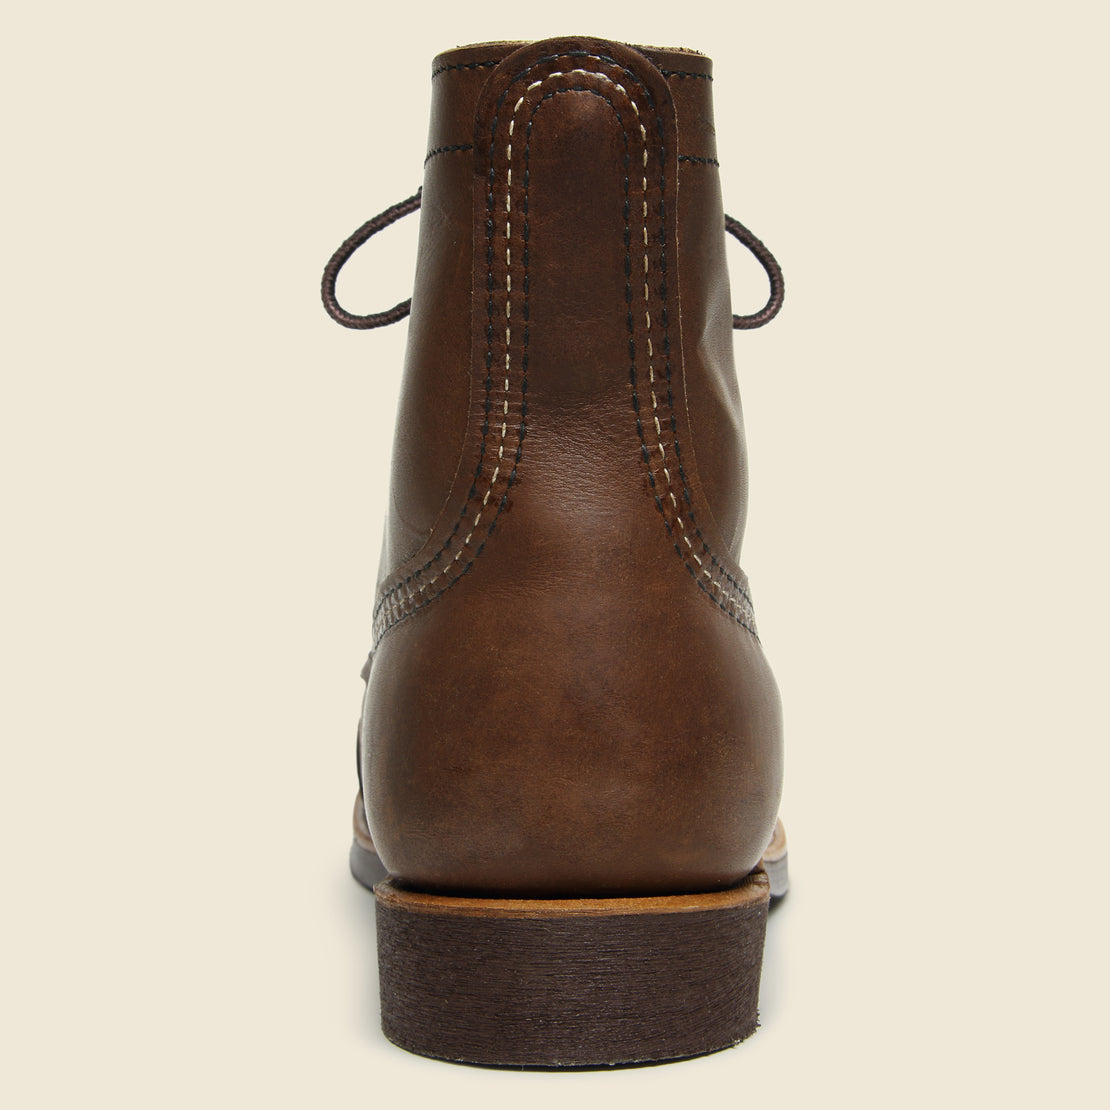 Iron Ranger No. 8111 - Amber - Mini-Lug Sole